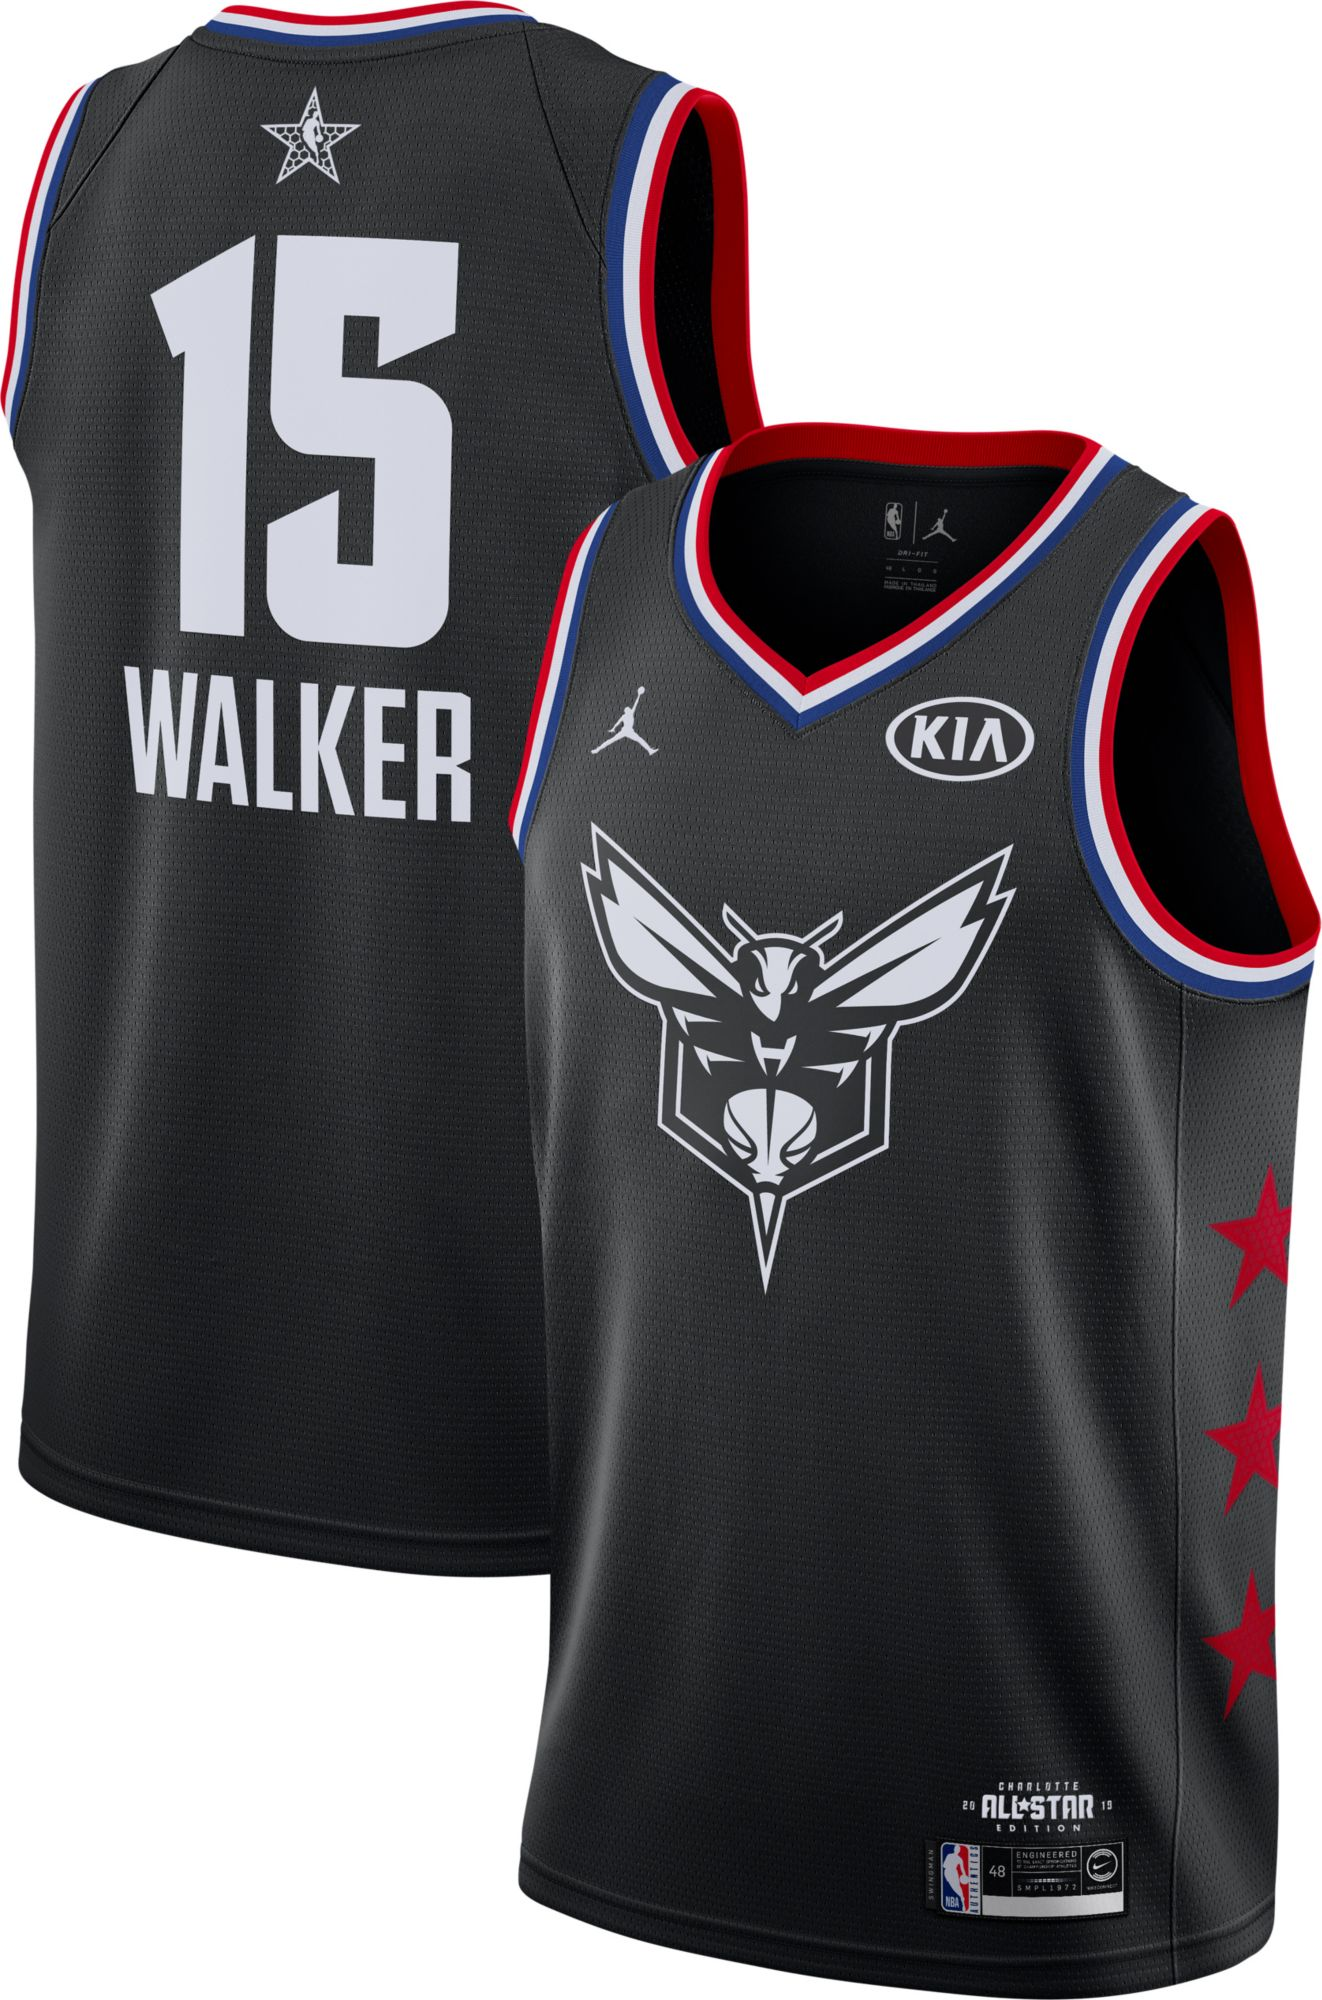 213c065f4ae8 Jordan Men s 2019 NBA All-Star Game Kemba Walker Black Dri-FIT Swingman  Jersey